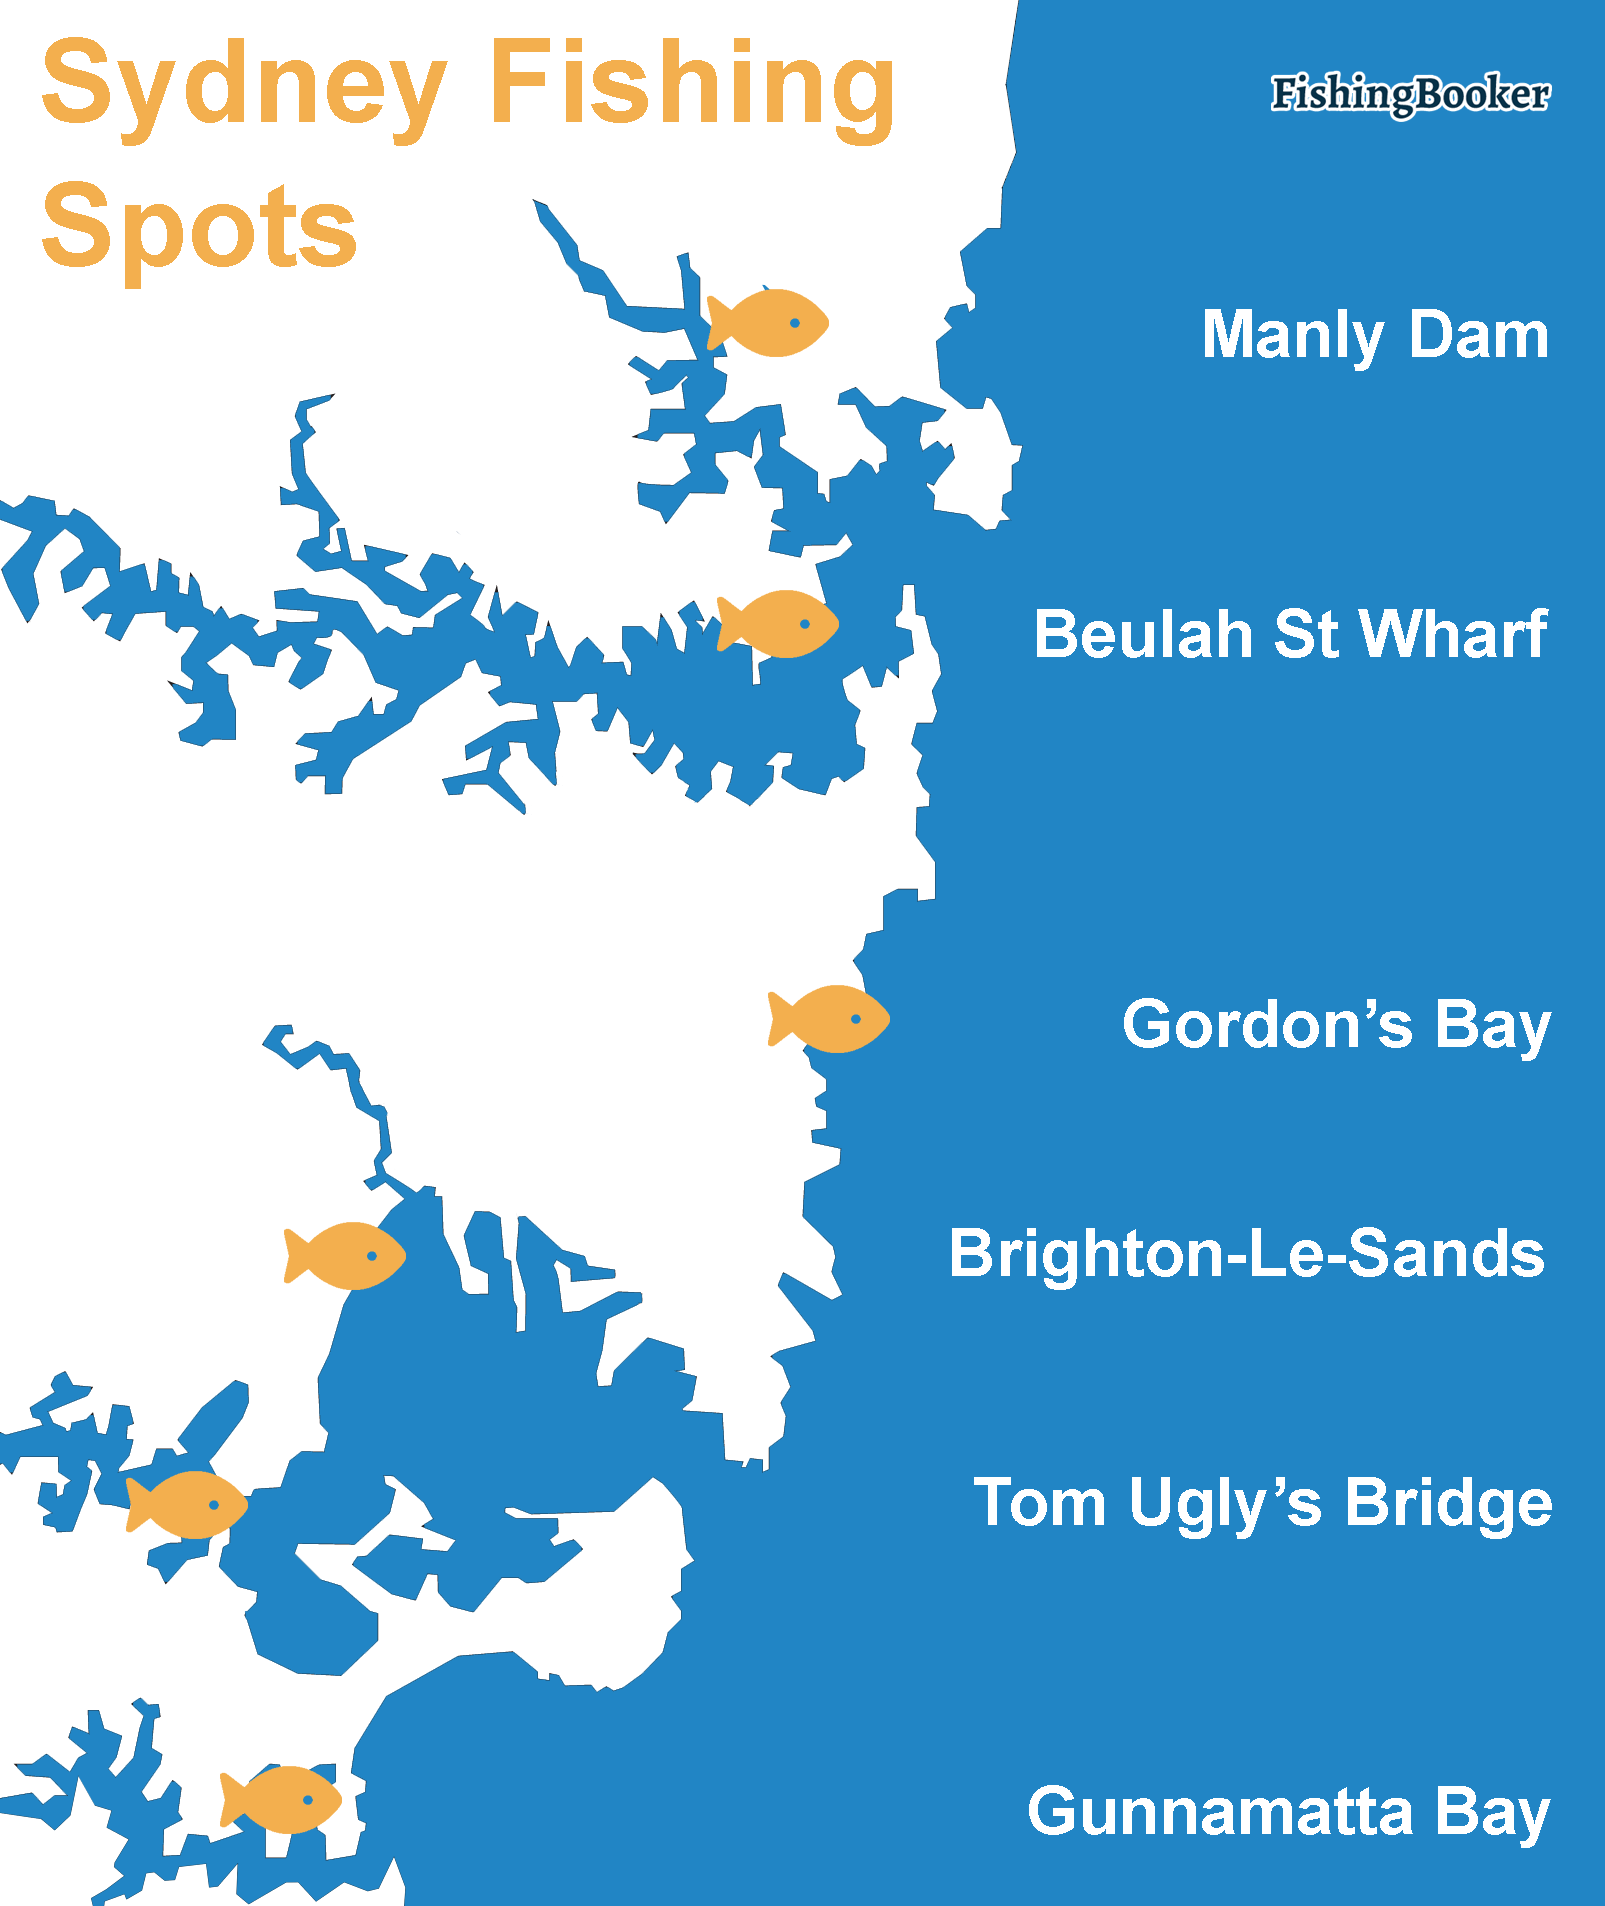 A map of the best fishing spots in Sydney, including Manly Dam, Beulah Street Wharf, Gordon's Bay, Brighton-Le-Sands, Tom Ugly's Bridge, and Gunnamatta Bay